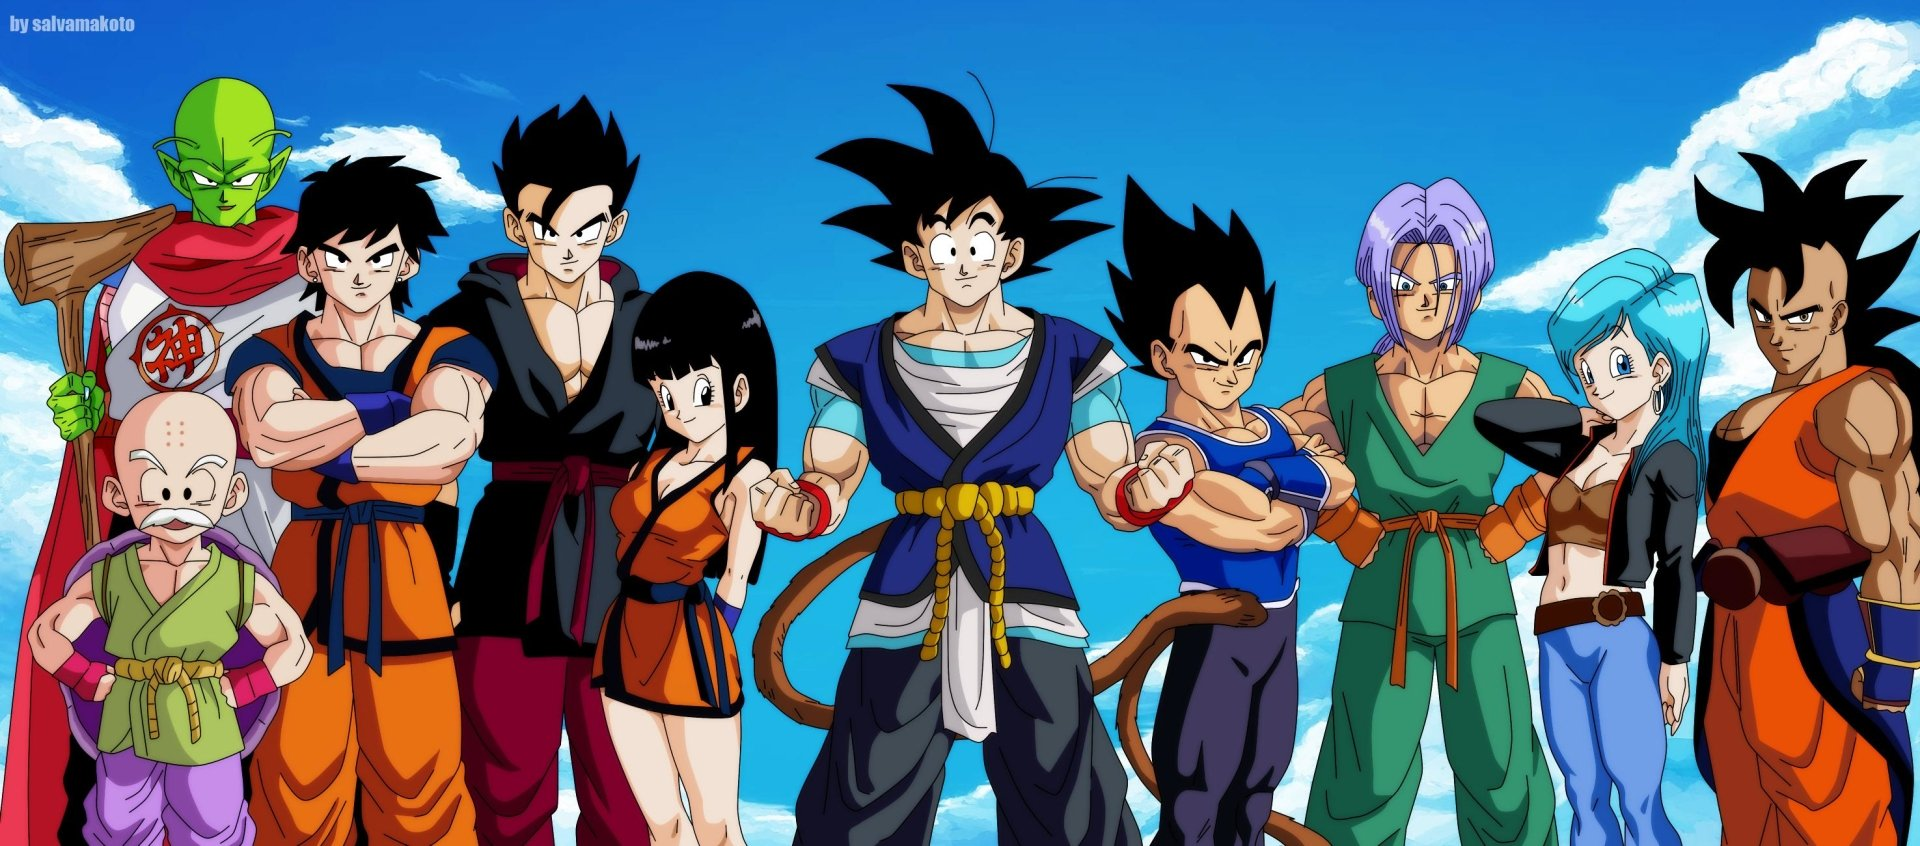 Anime - Dragon Ball Super  Trunks (Dragon Ball) Vegeta (Dragon Ball) Krillin (Dragon Ball) Gohan (Dragon Ball) Goku Dende (Dragon Ball) Pan (Dragon Ball) Bulla (Dragon Ball) Wallpaper